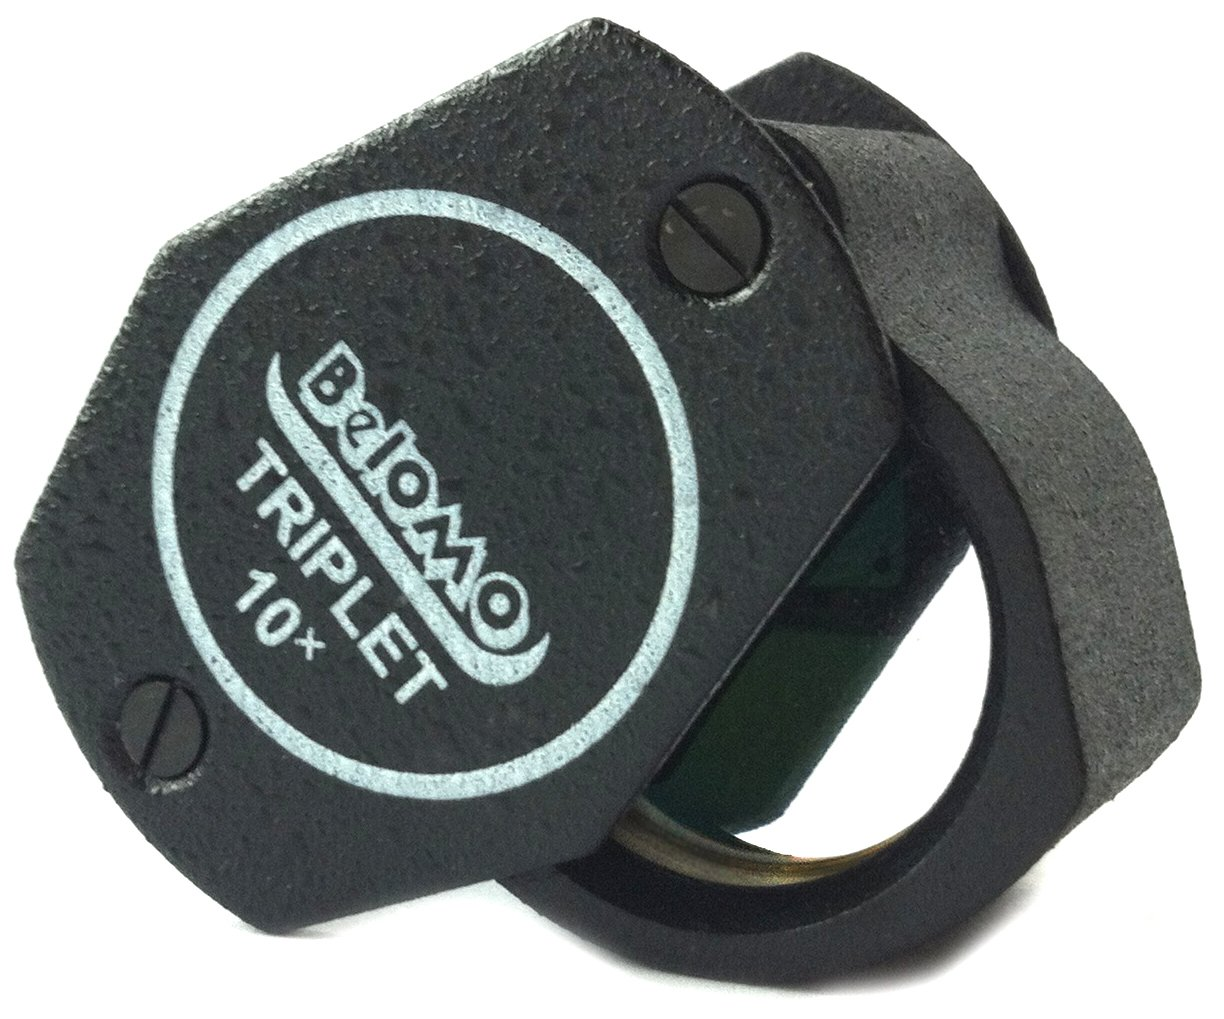 BelOMO 10x Triplet Jewelers Loupe Folding Magnifier 21mm (.85'') Optical Glass with Anti-Reflection Coating for a Bright, Clear and Color Correct View by BelOMO